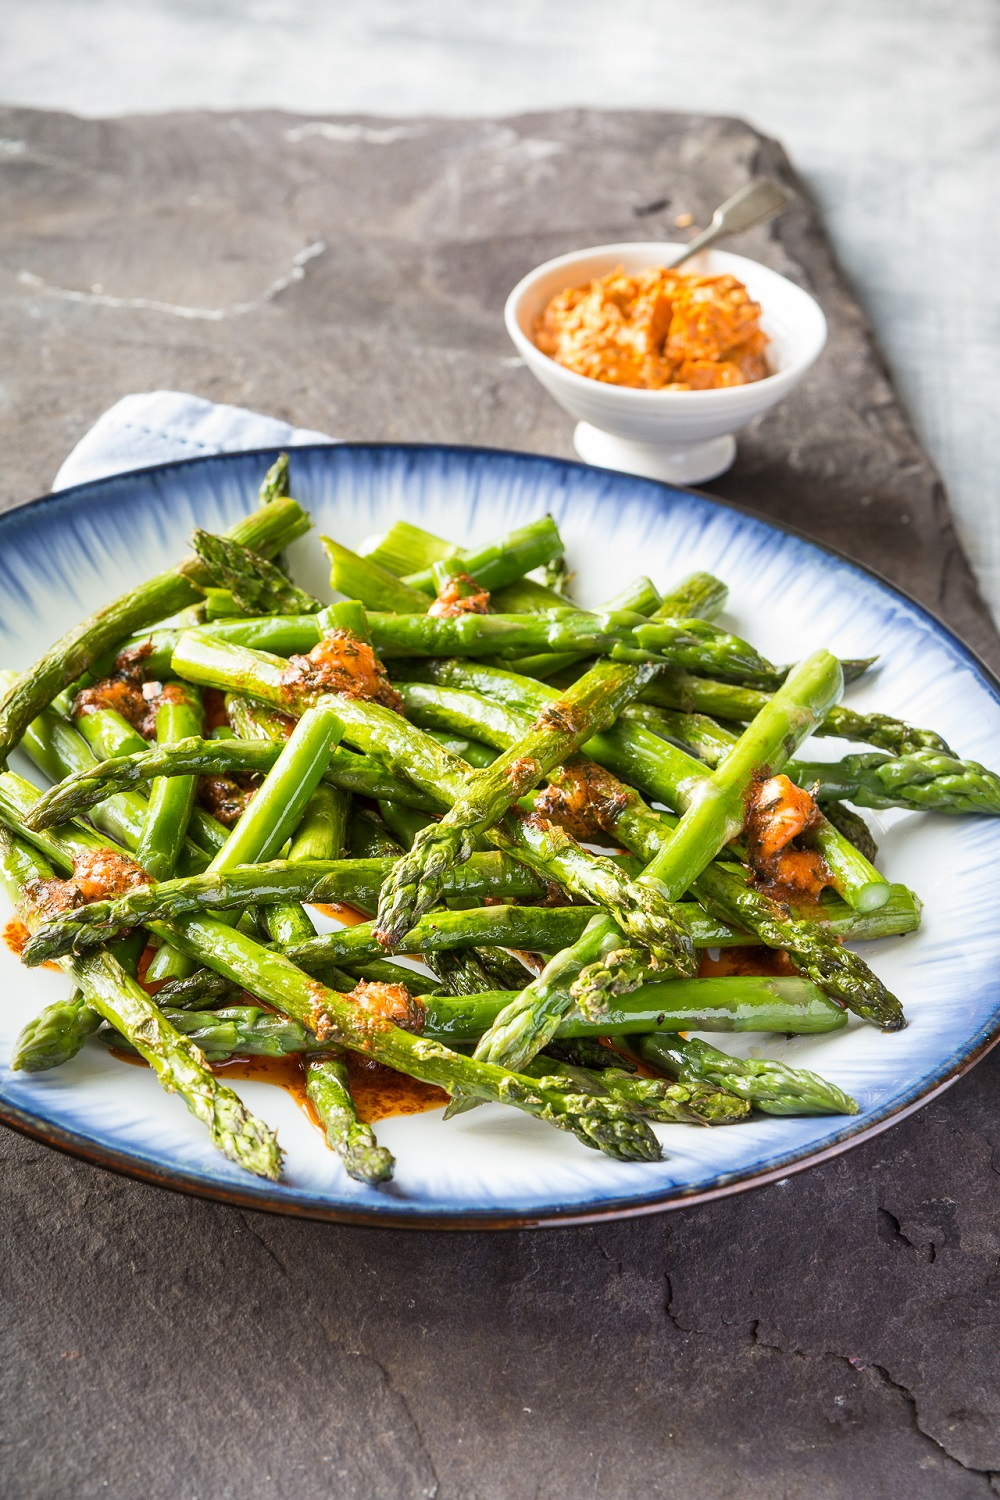 Roast British Asparagus With Smoked Paprika And Thyme Butter